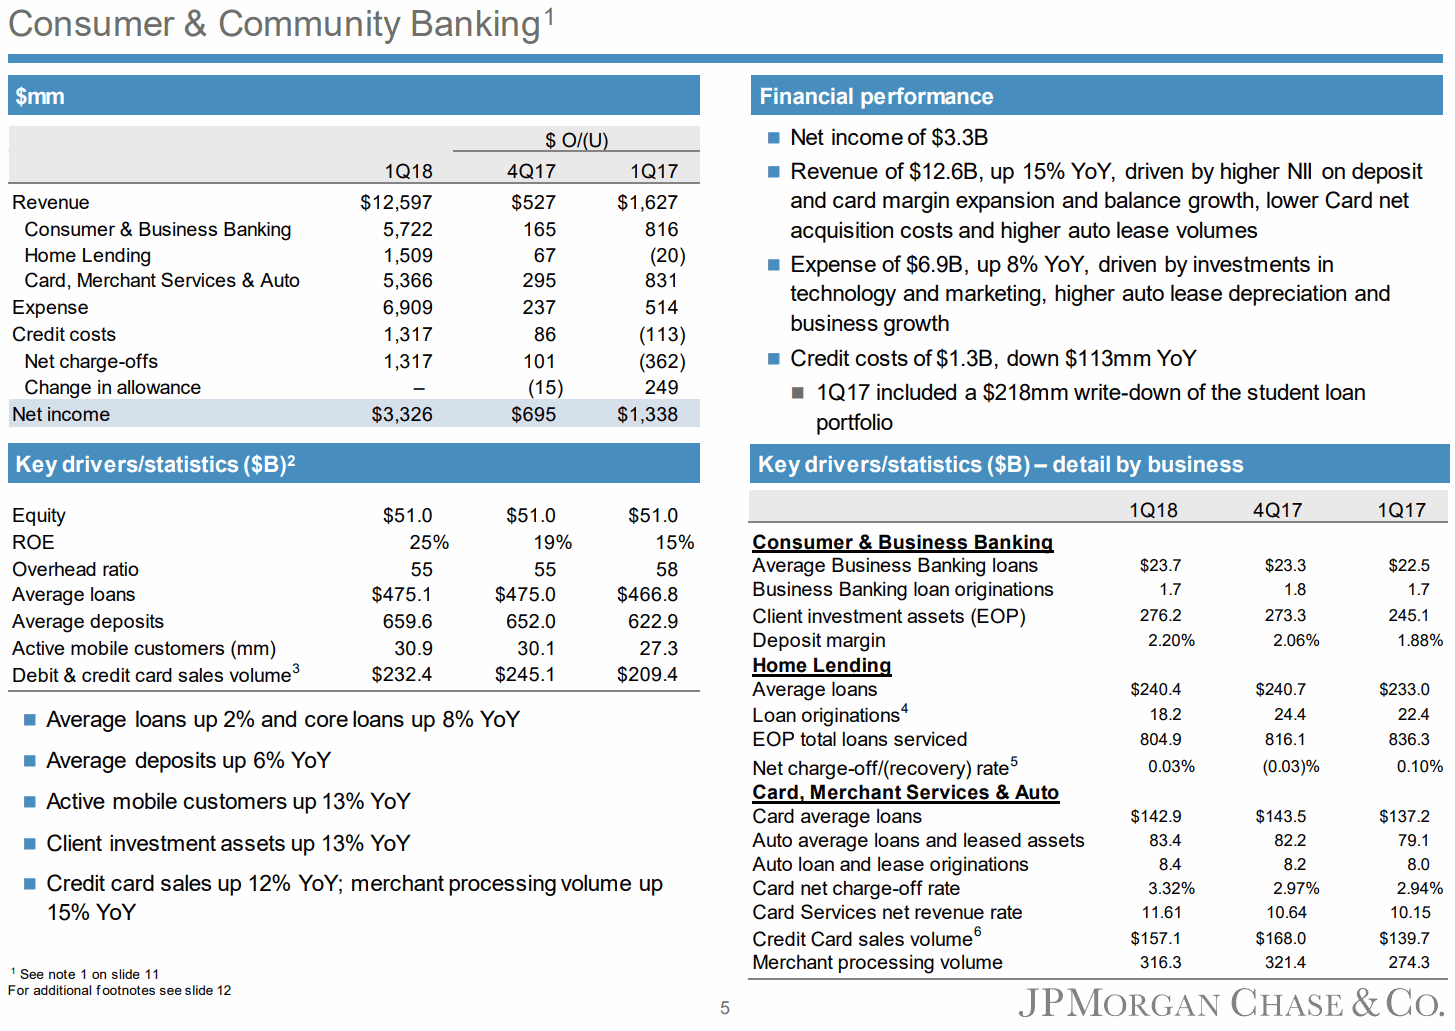 JPMorgan-1Q18-Consumer-and-Community-Banking